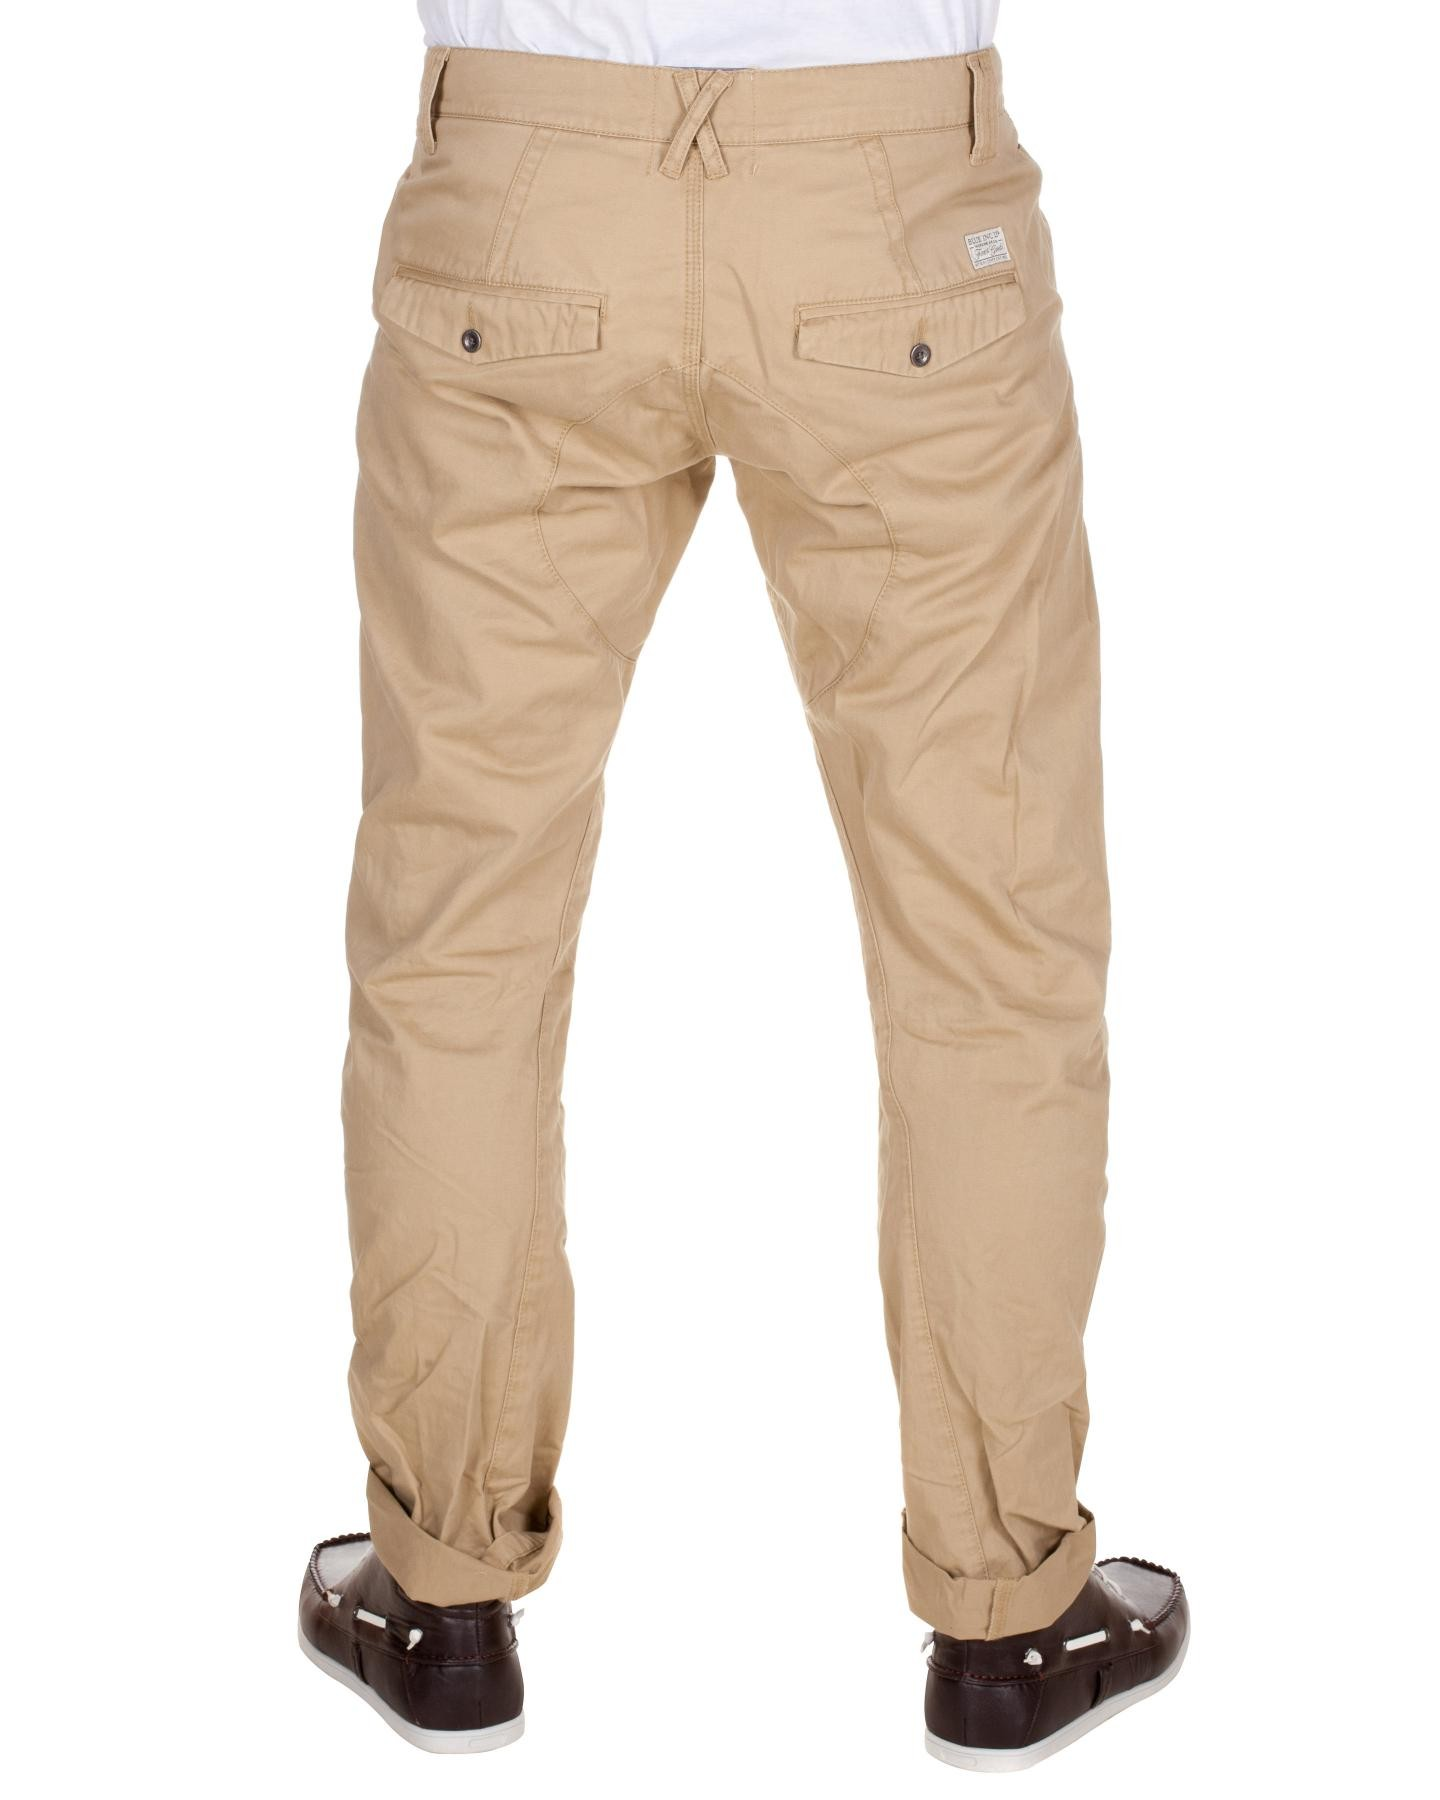 Blue-Inc-Mens-Neil-Carrot-Fit-Chino-Jeans-in-Beige